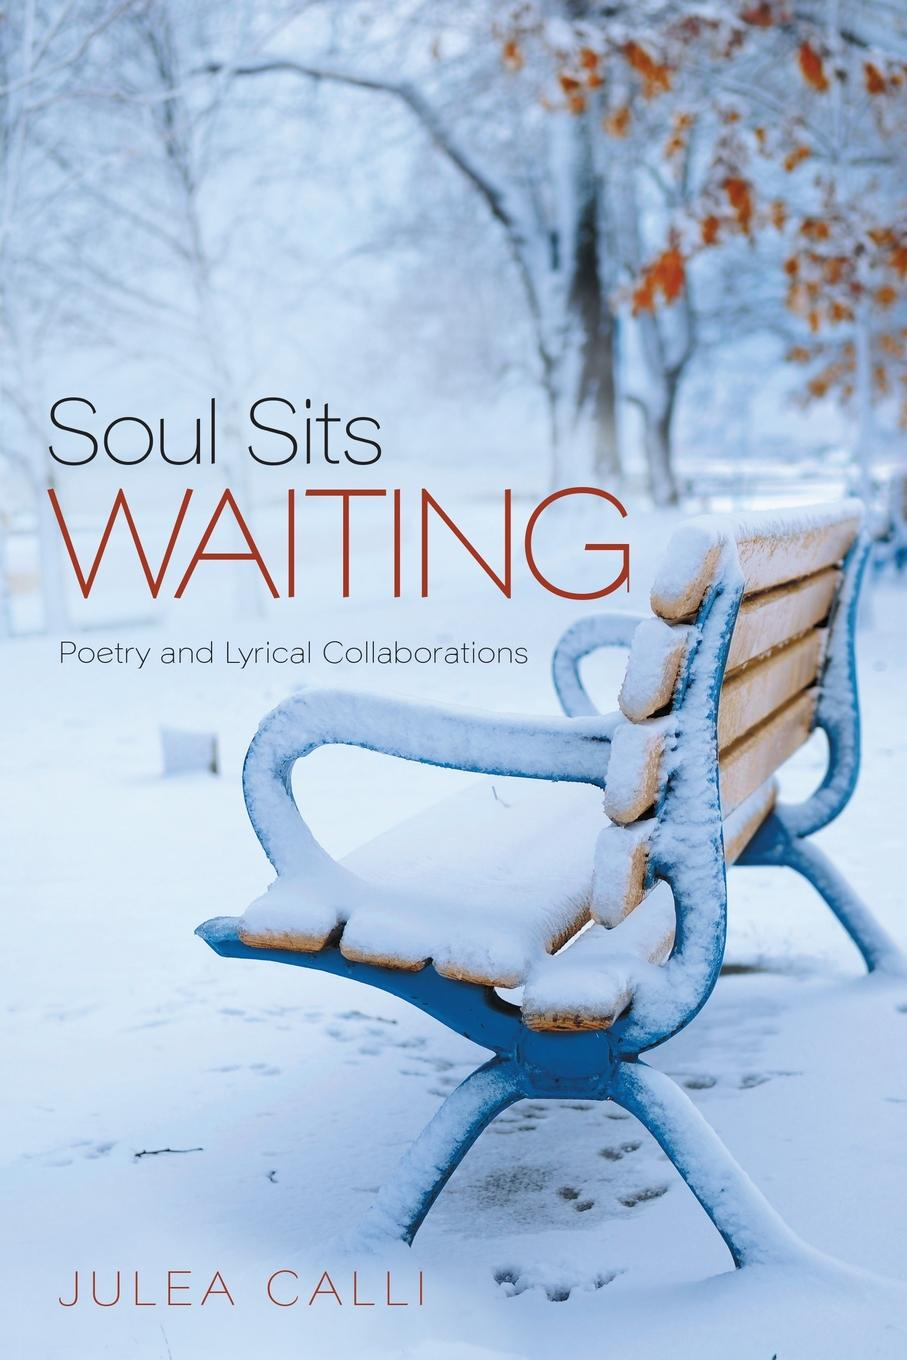 Julea Calli Soul Sits Waiting. Poetry and Lyrical Collaborations sits диван ville